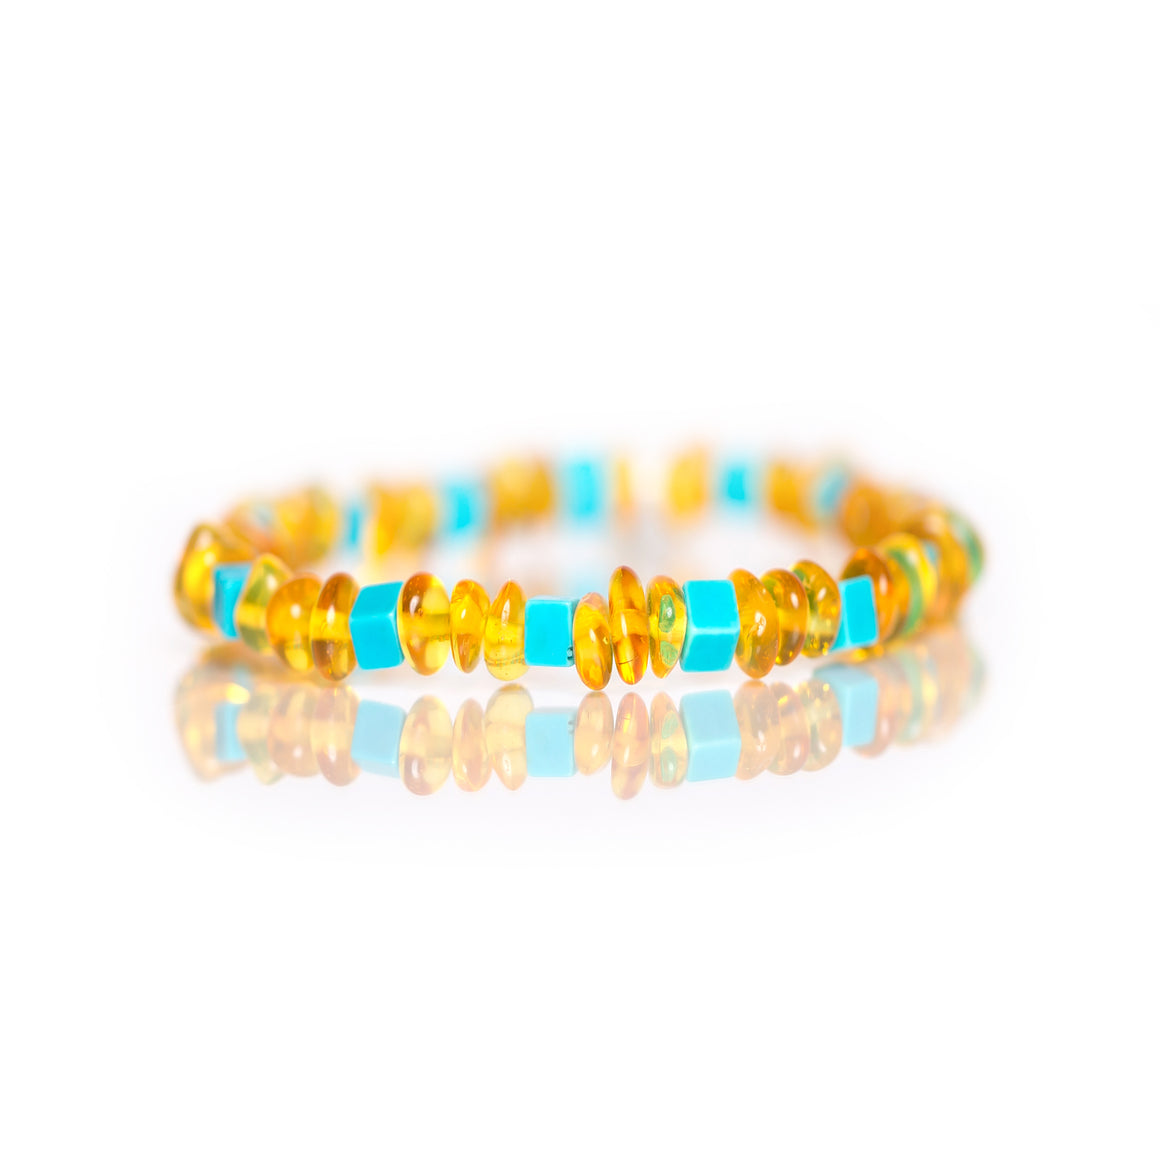 Amber Bracelet with Square Turquoise in Jewelry for women